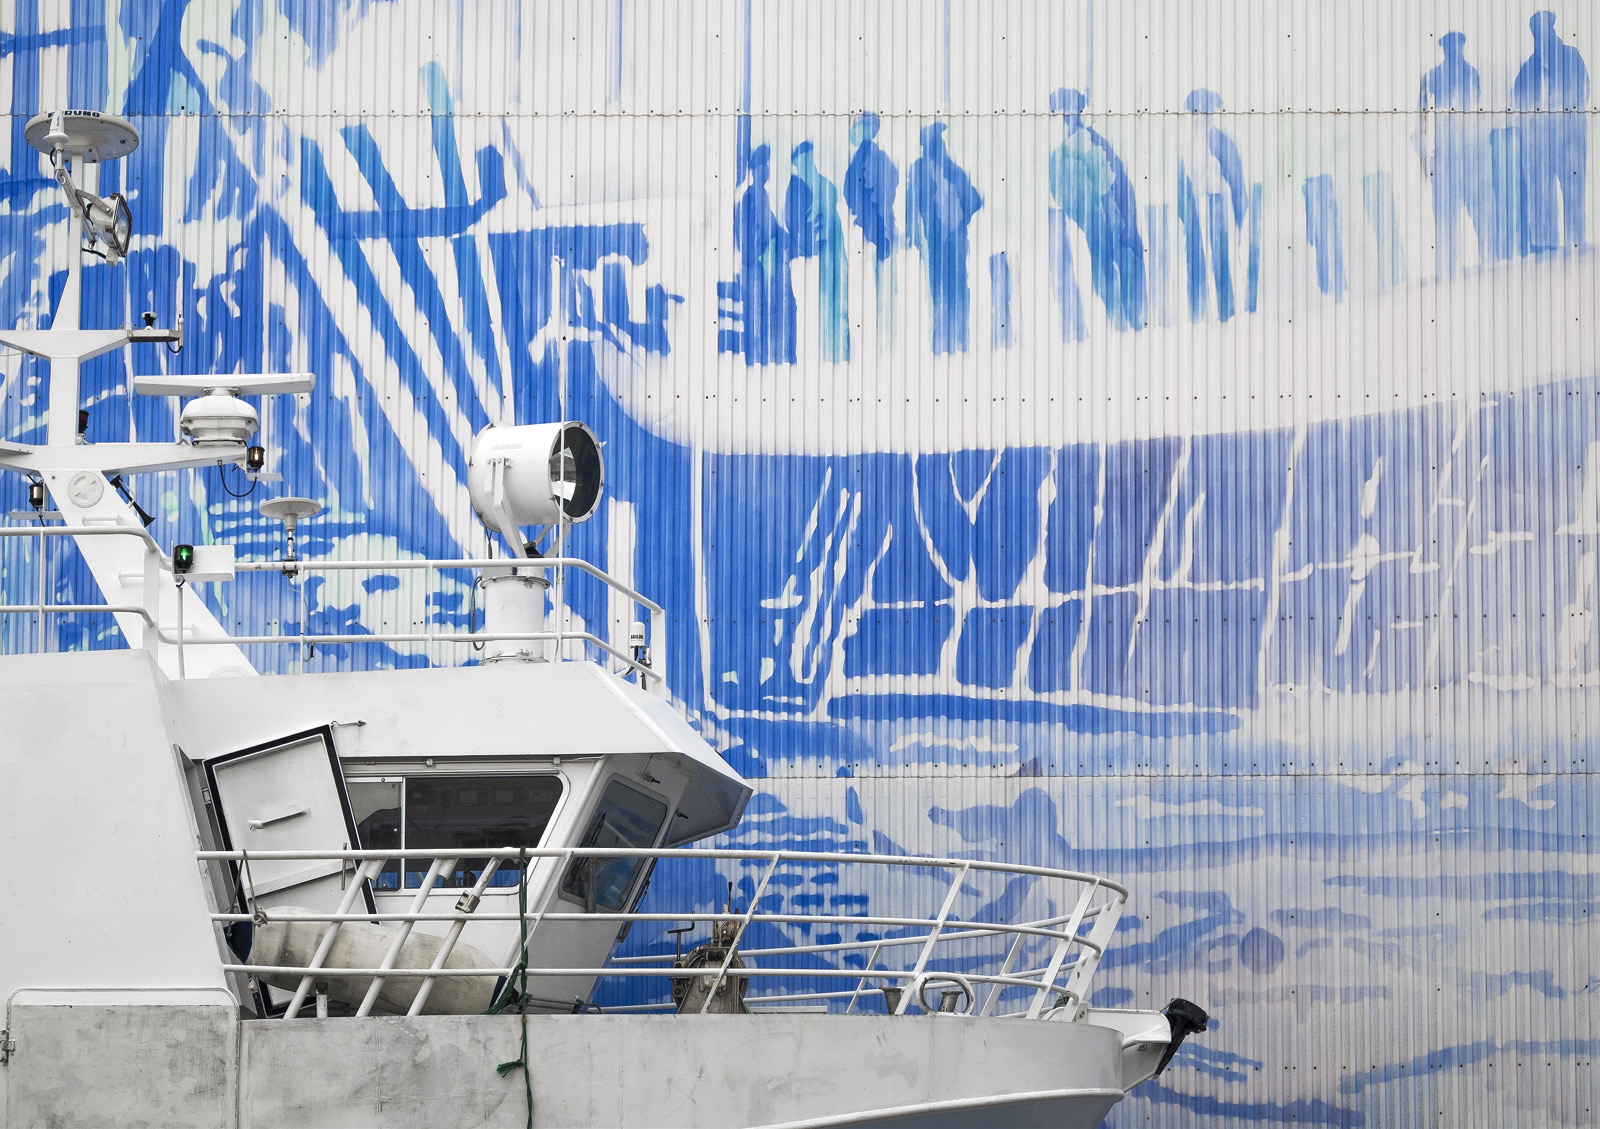 I came across this gigantic Wedgewood coloured mural on the side of a large hangar style boat shed and was immediately struck...